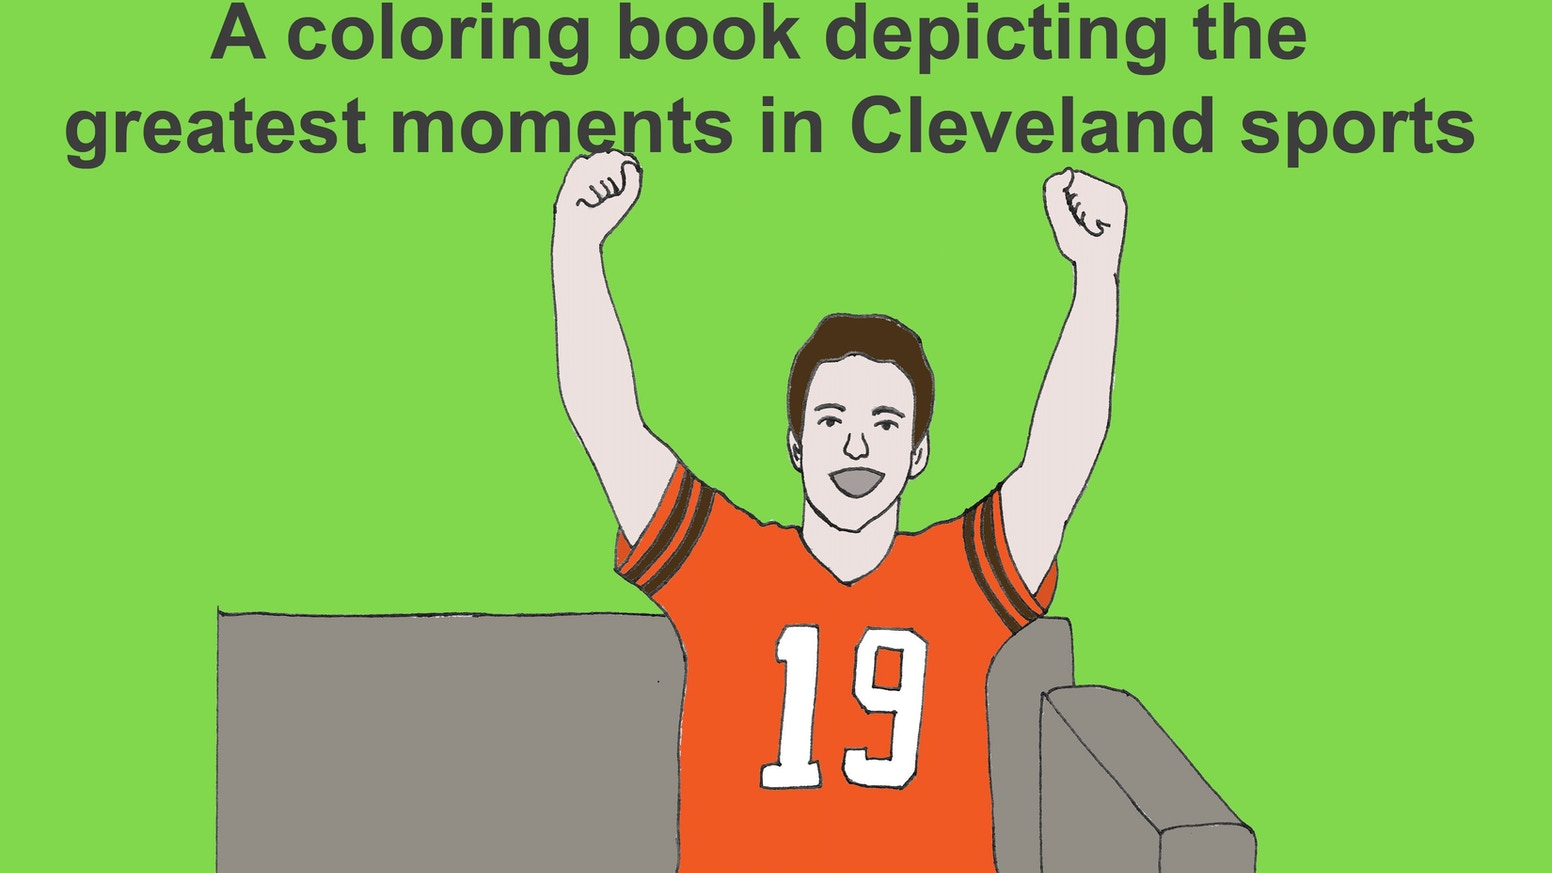 A  coloring book for the whole family, depicting famous moments of glory from Cleveland professional sports.